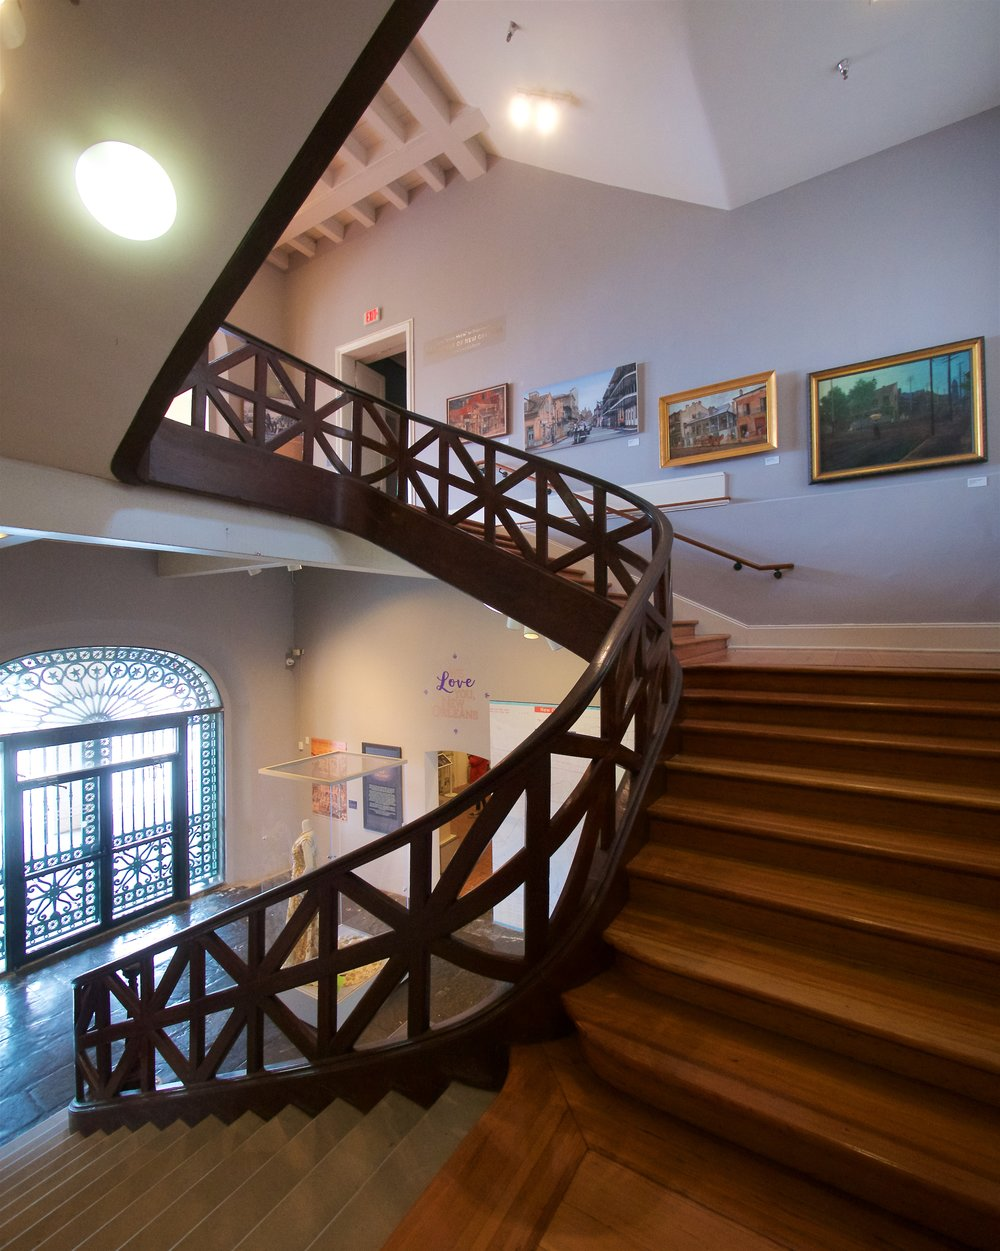 Central staircase